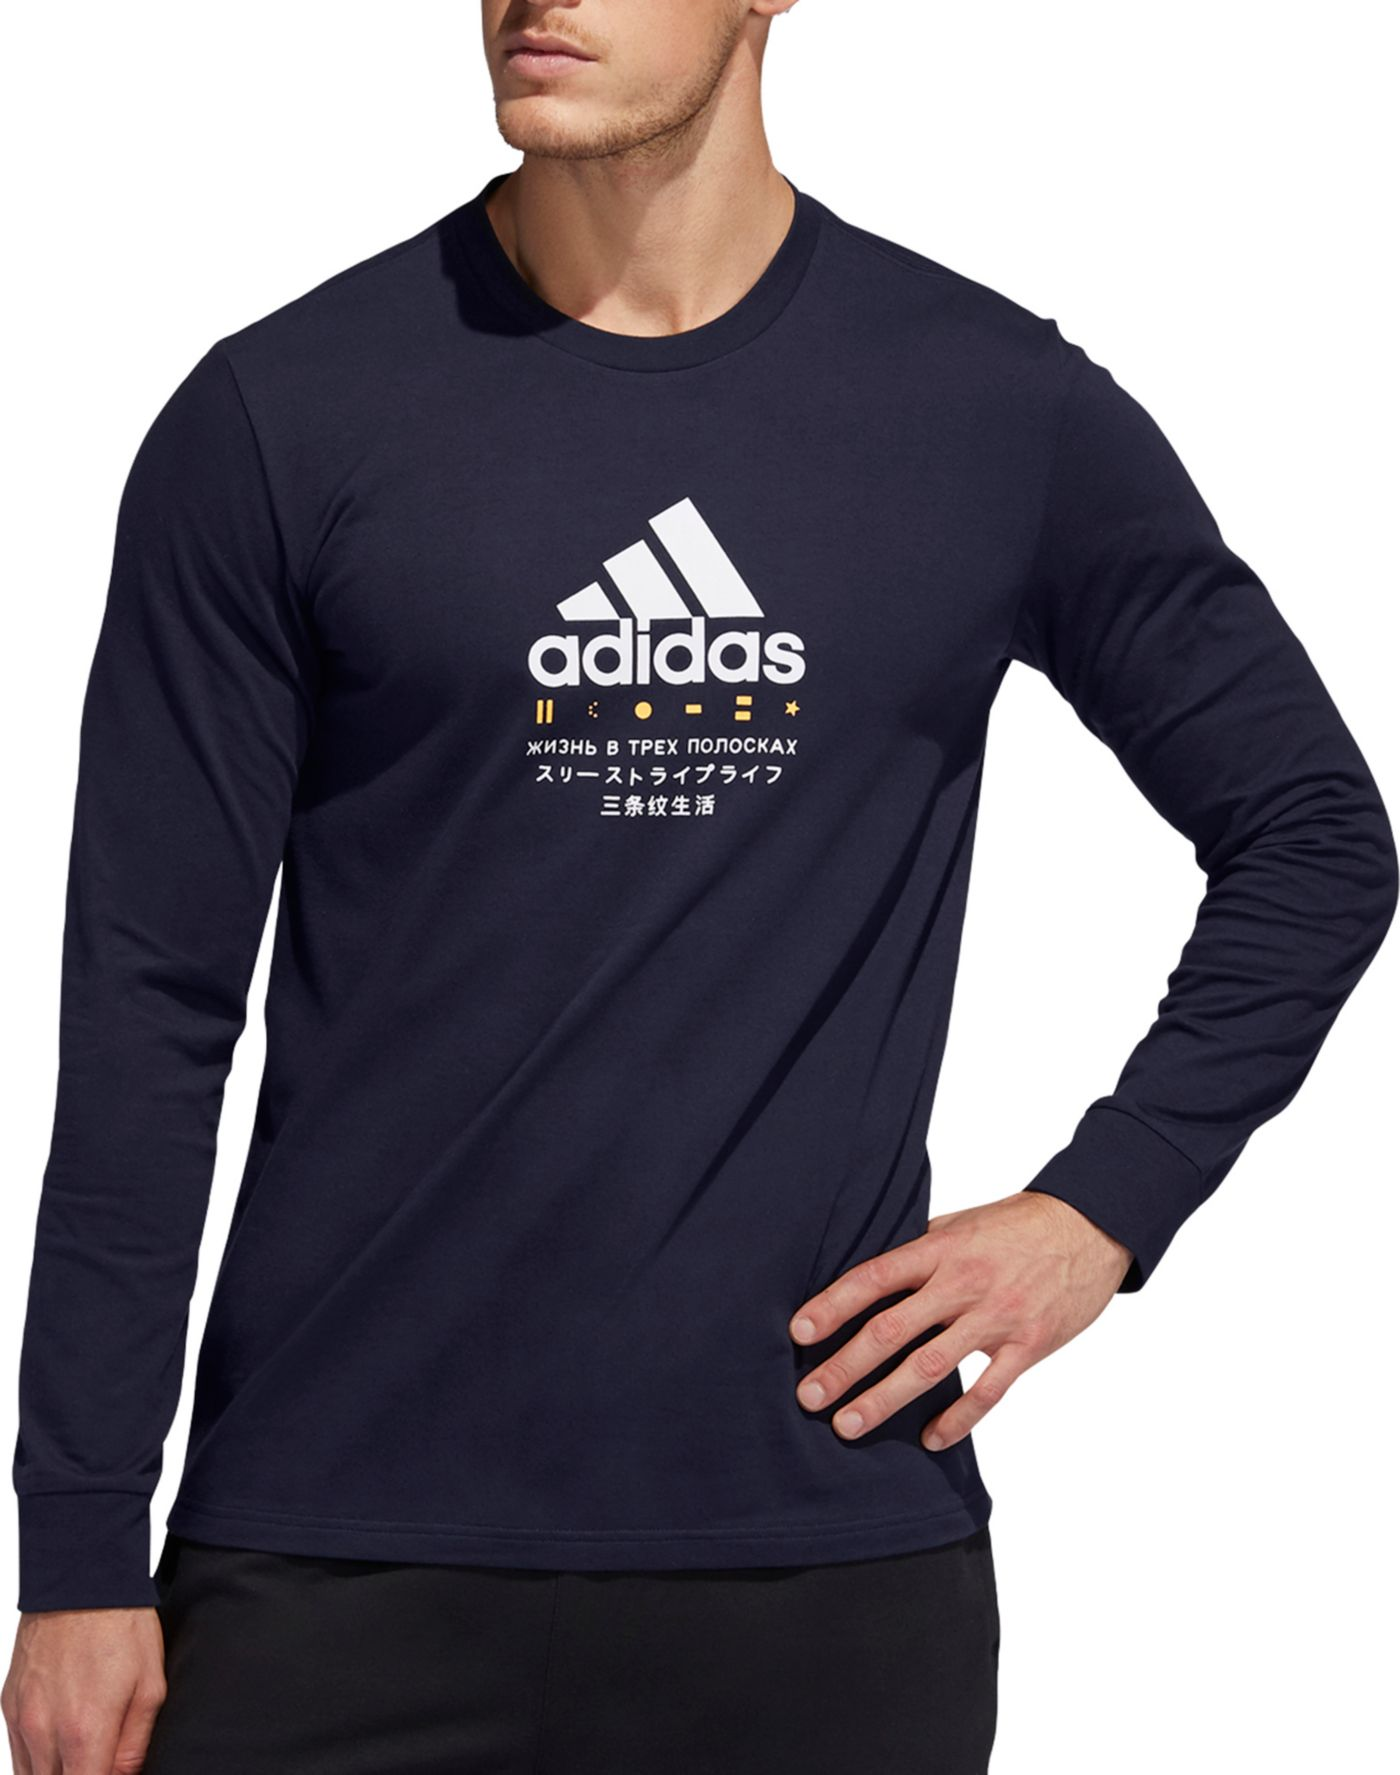 adidas Men's Global Citizens Graphic Long Sleeve Shirt